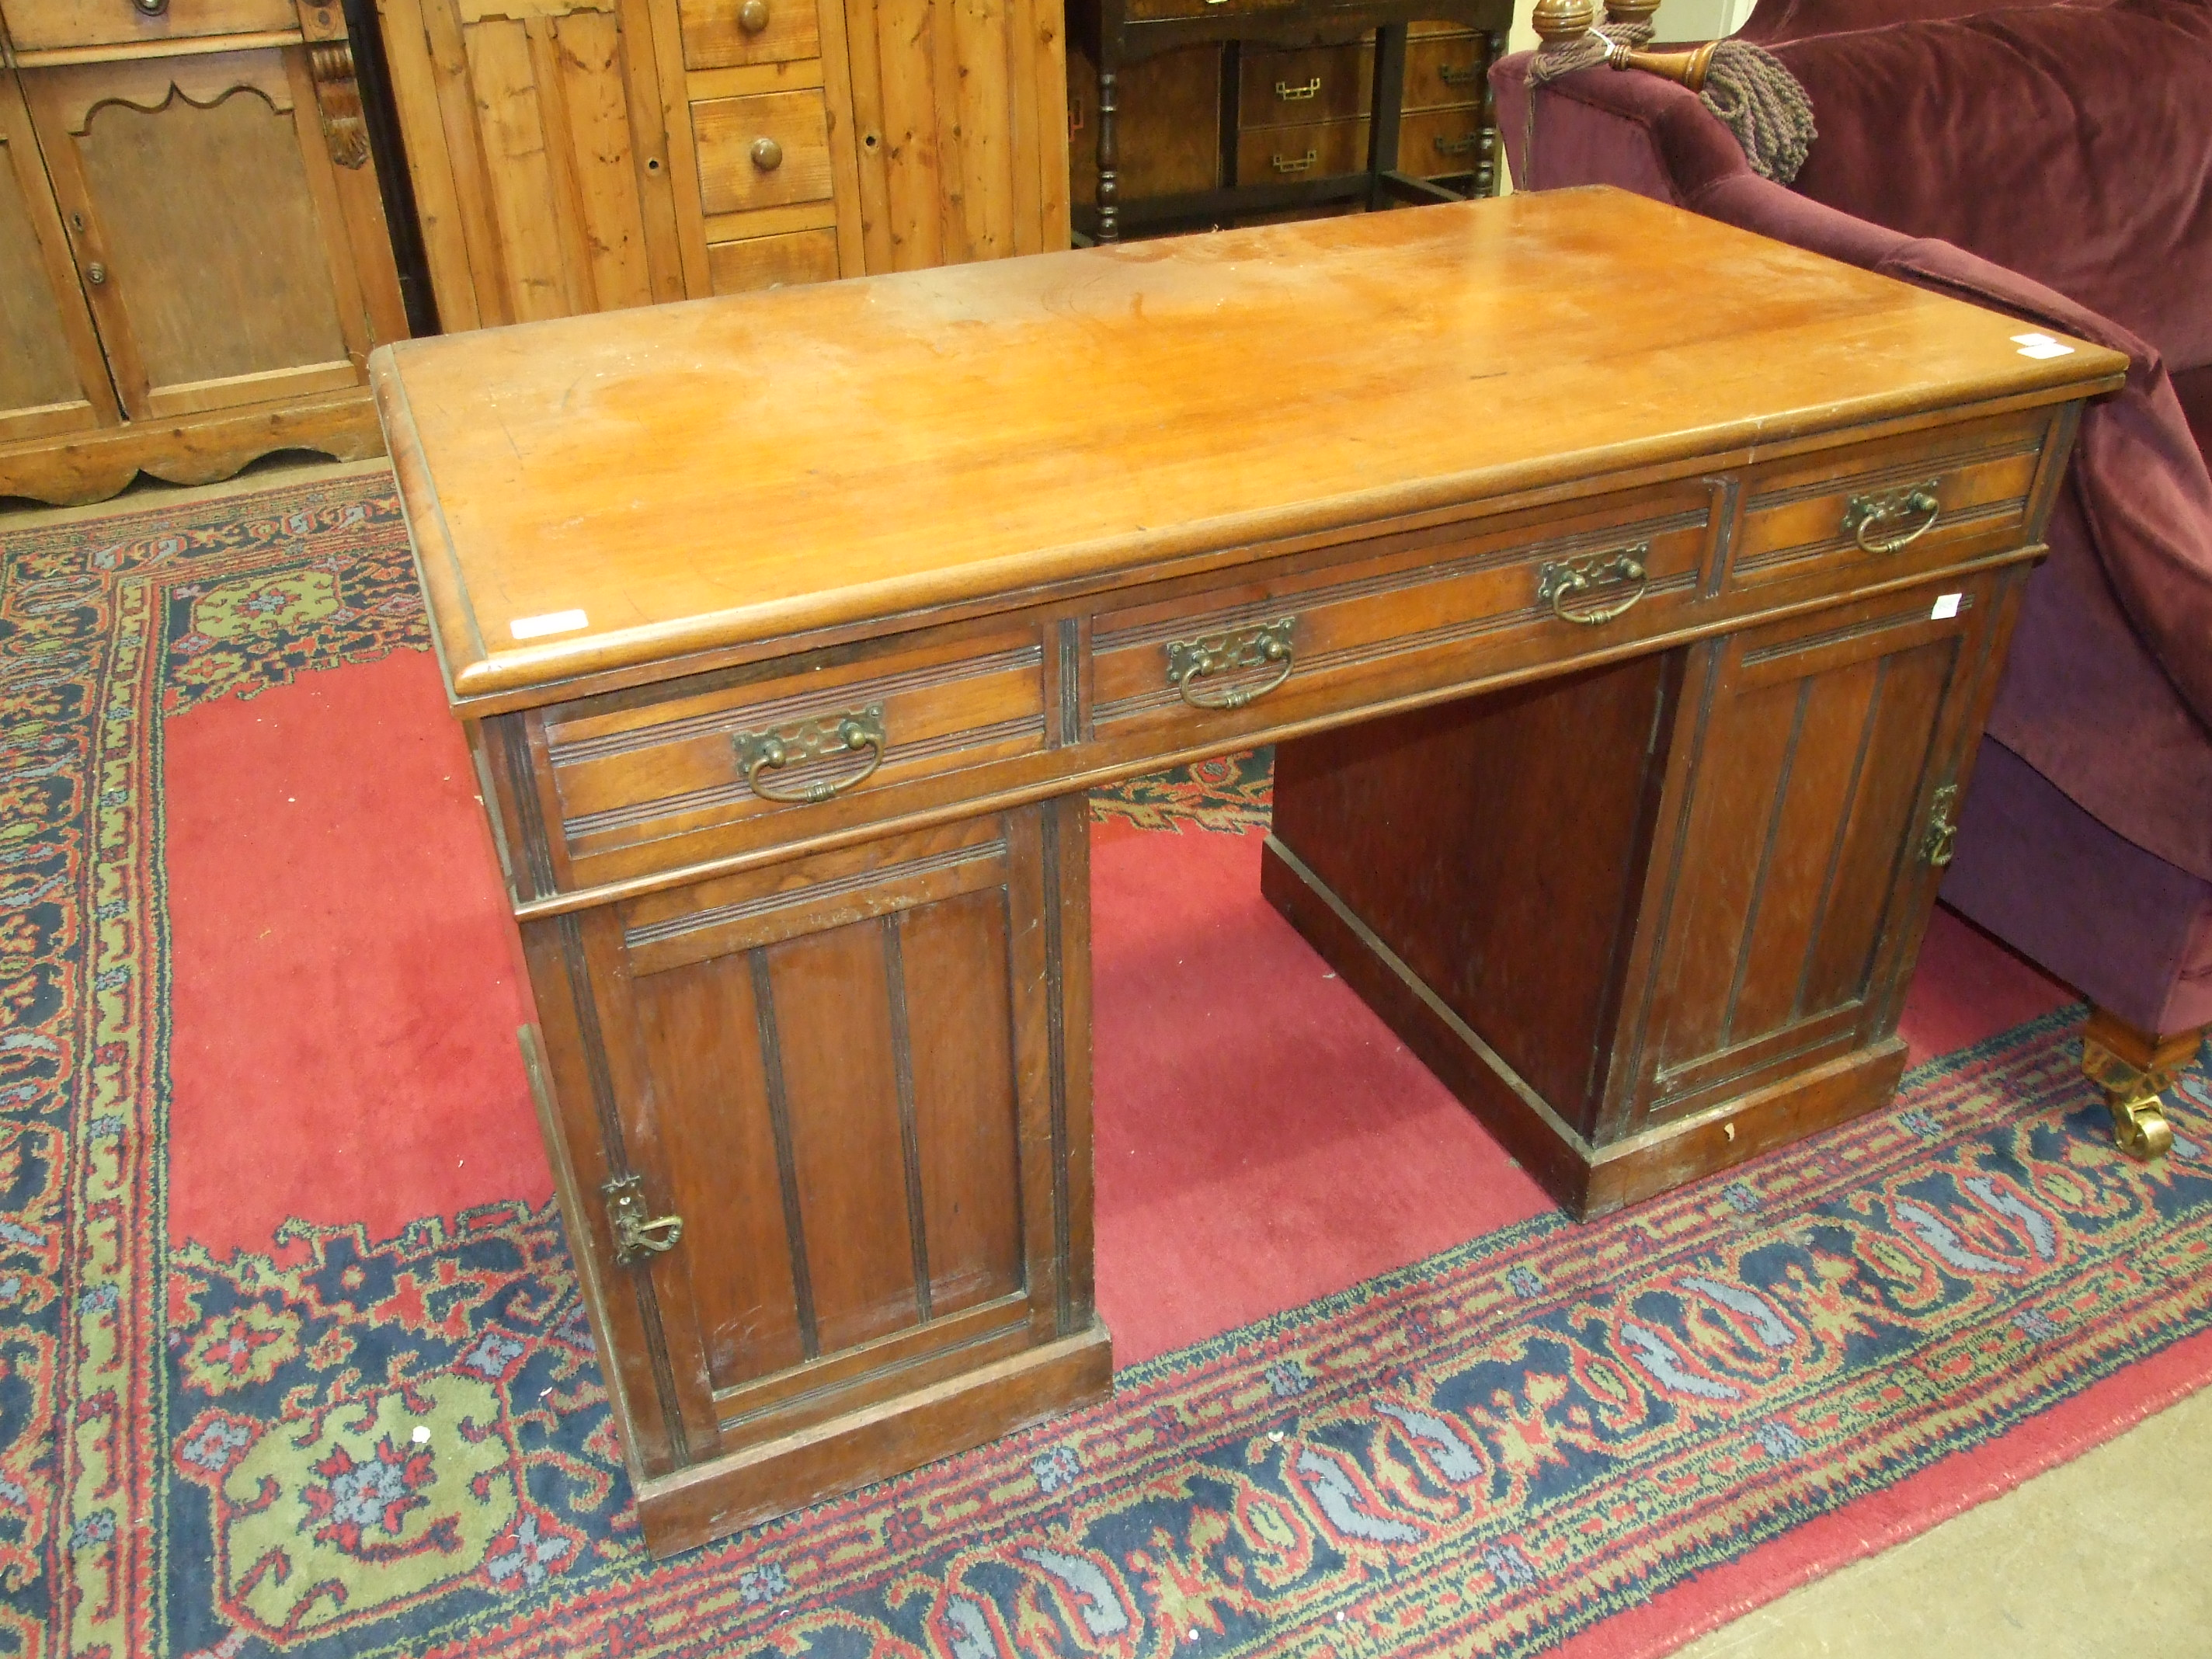 Lot 26 - A late-19th/early-20th century mahogany knee-hole desk, the rectangular top fitted with three frieze